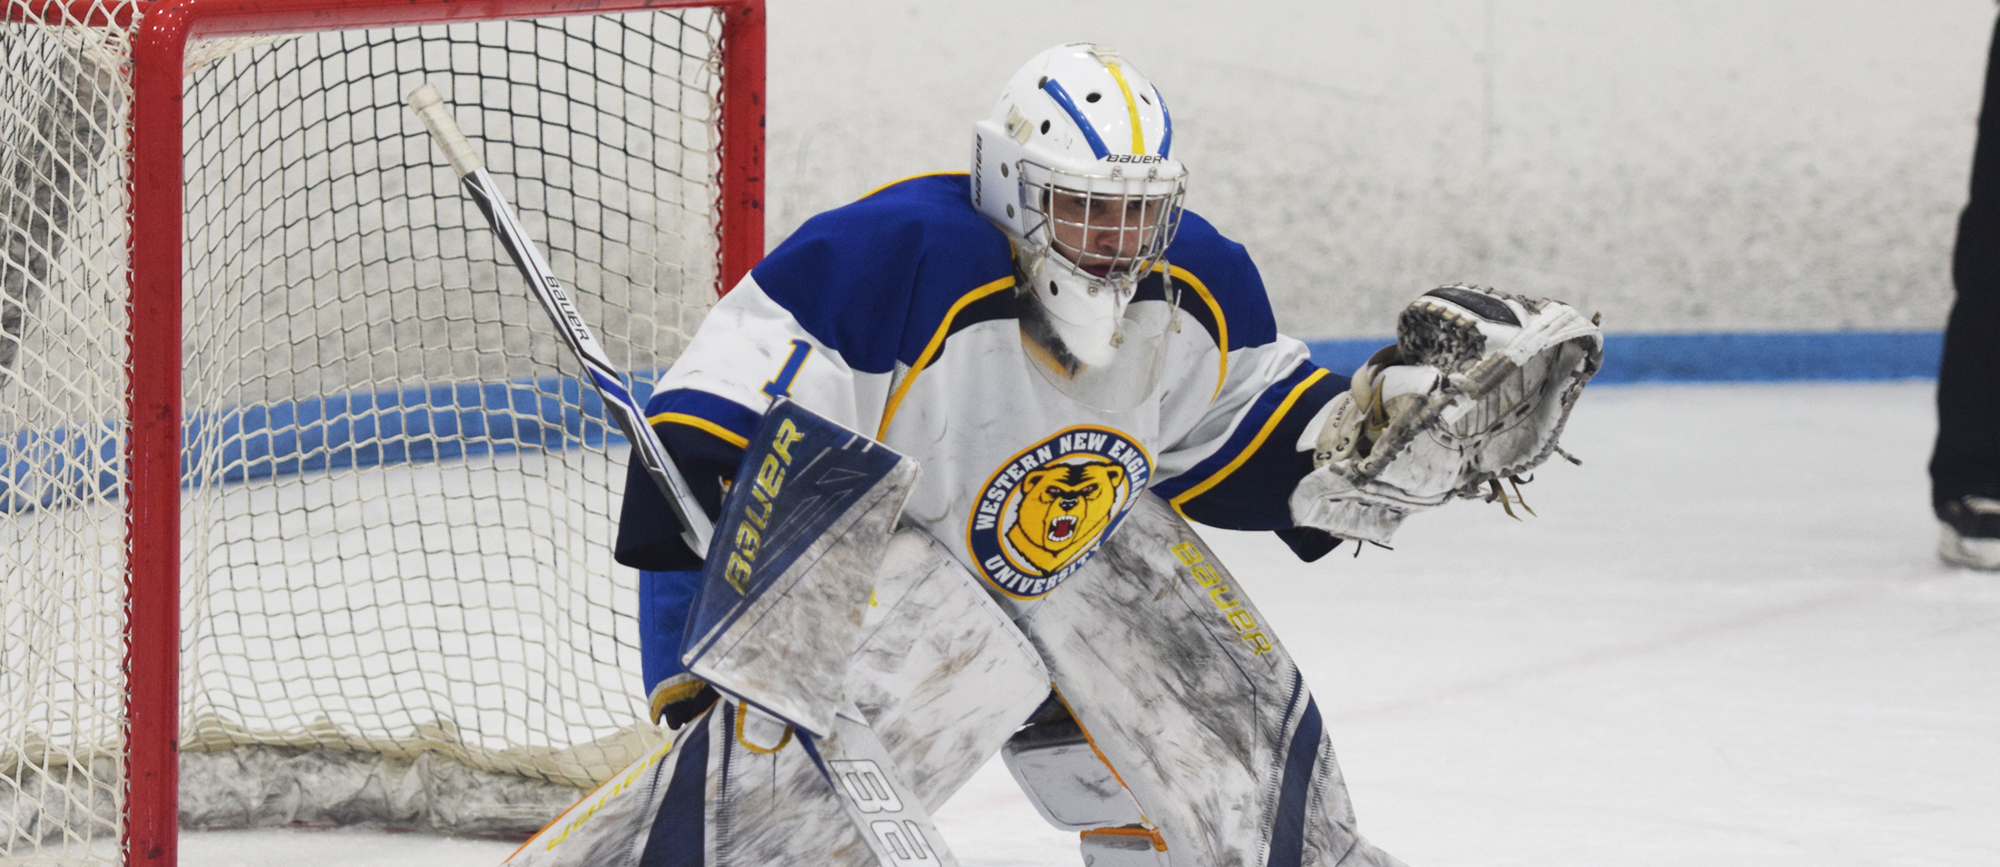 Kyle Carducci finished with 52 saves in Western New England's 4-3 win over Endicott on Saturday night. (Photo by Rachael Margossian)